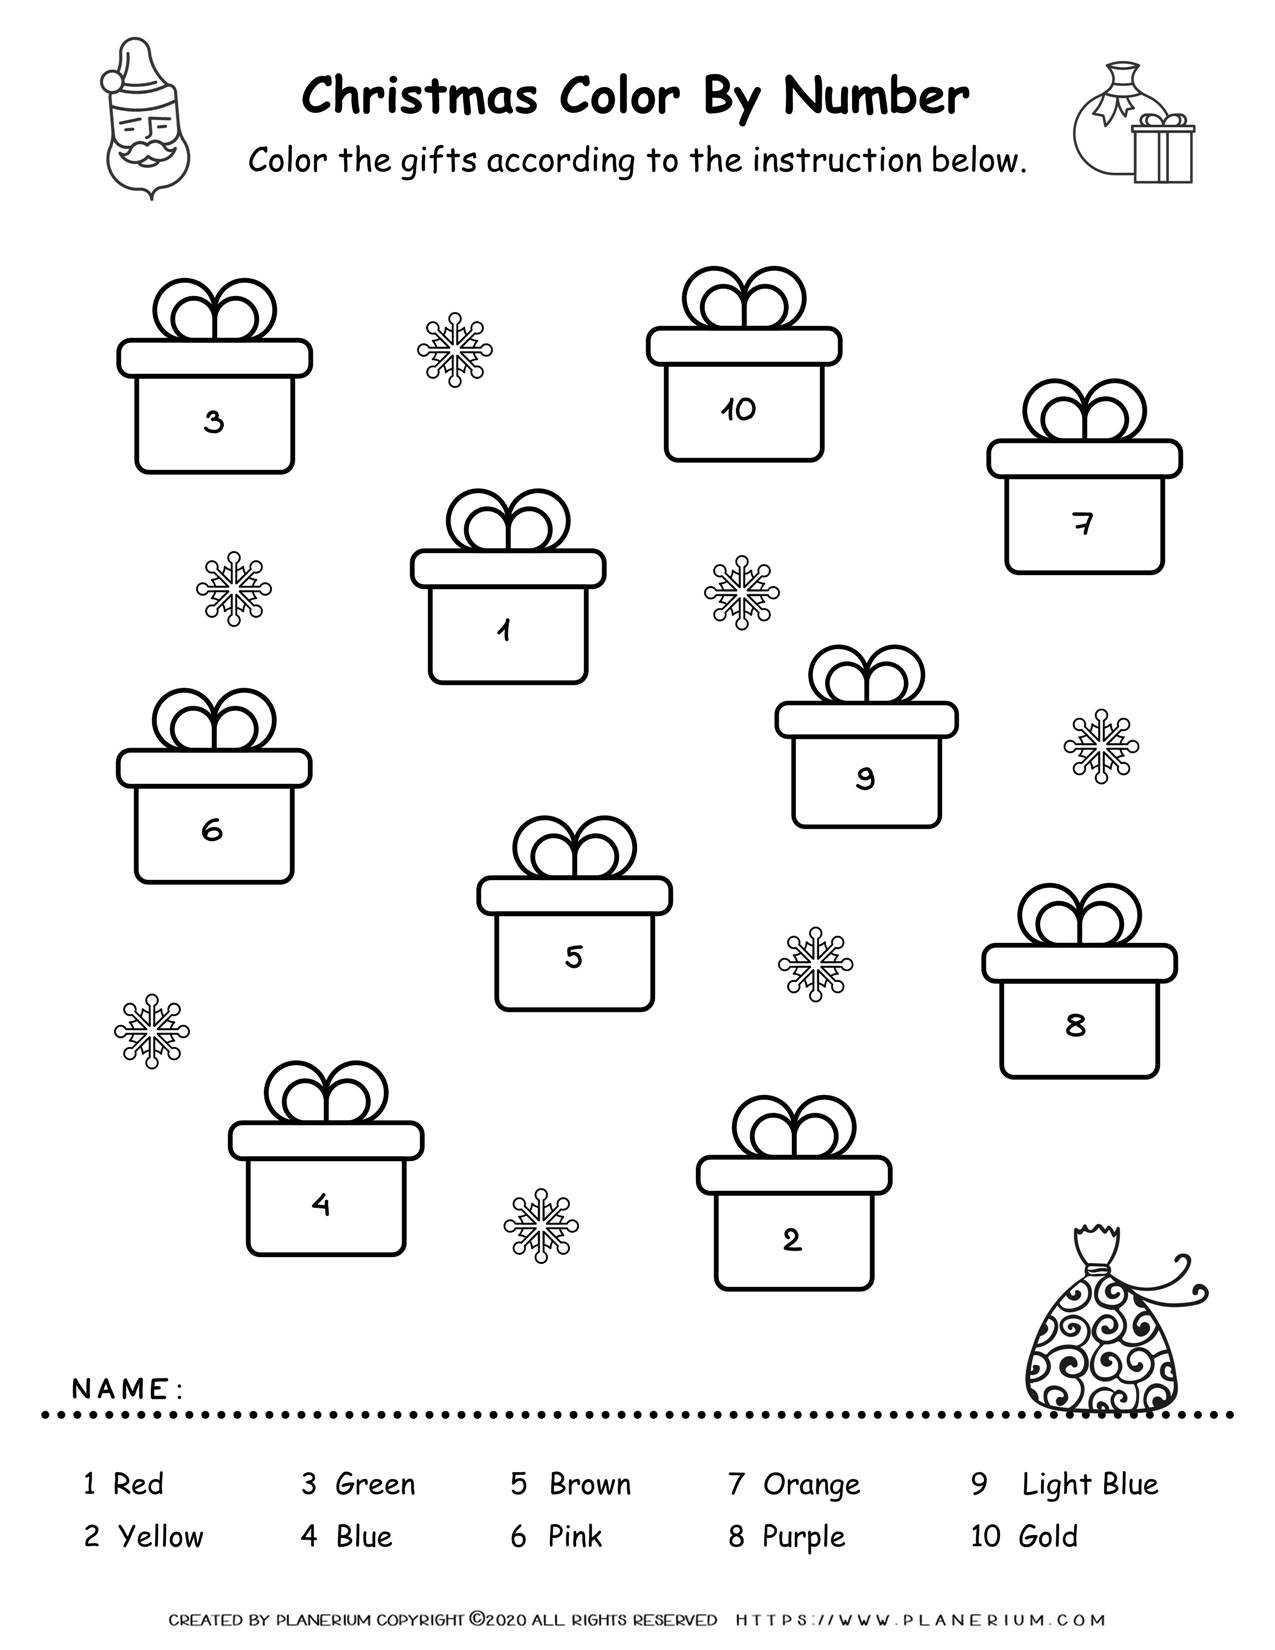 Christmas Color By Number - Gift Boxes   Free Printables   Planerium